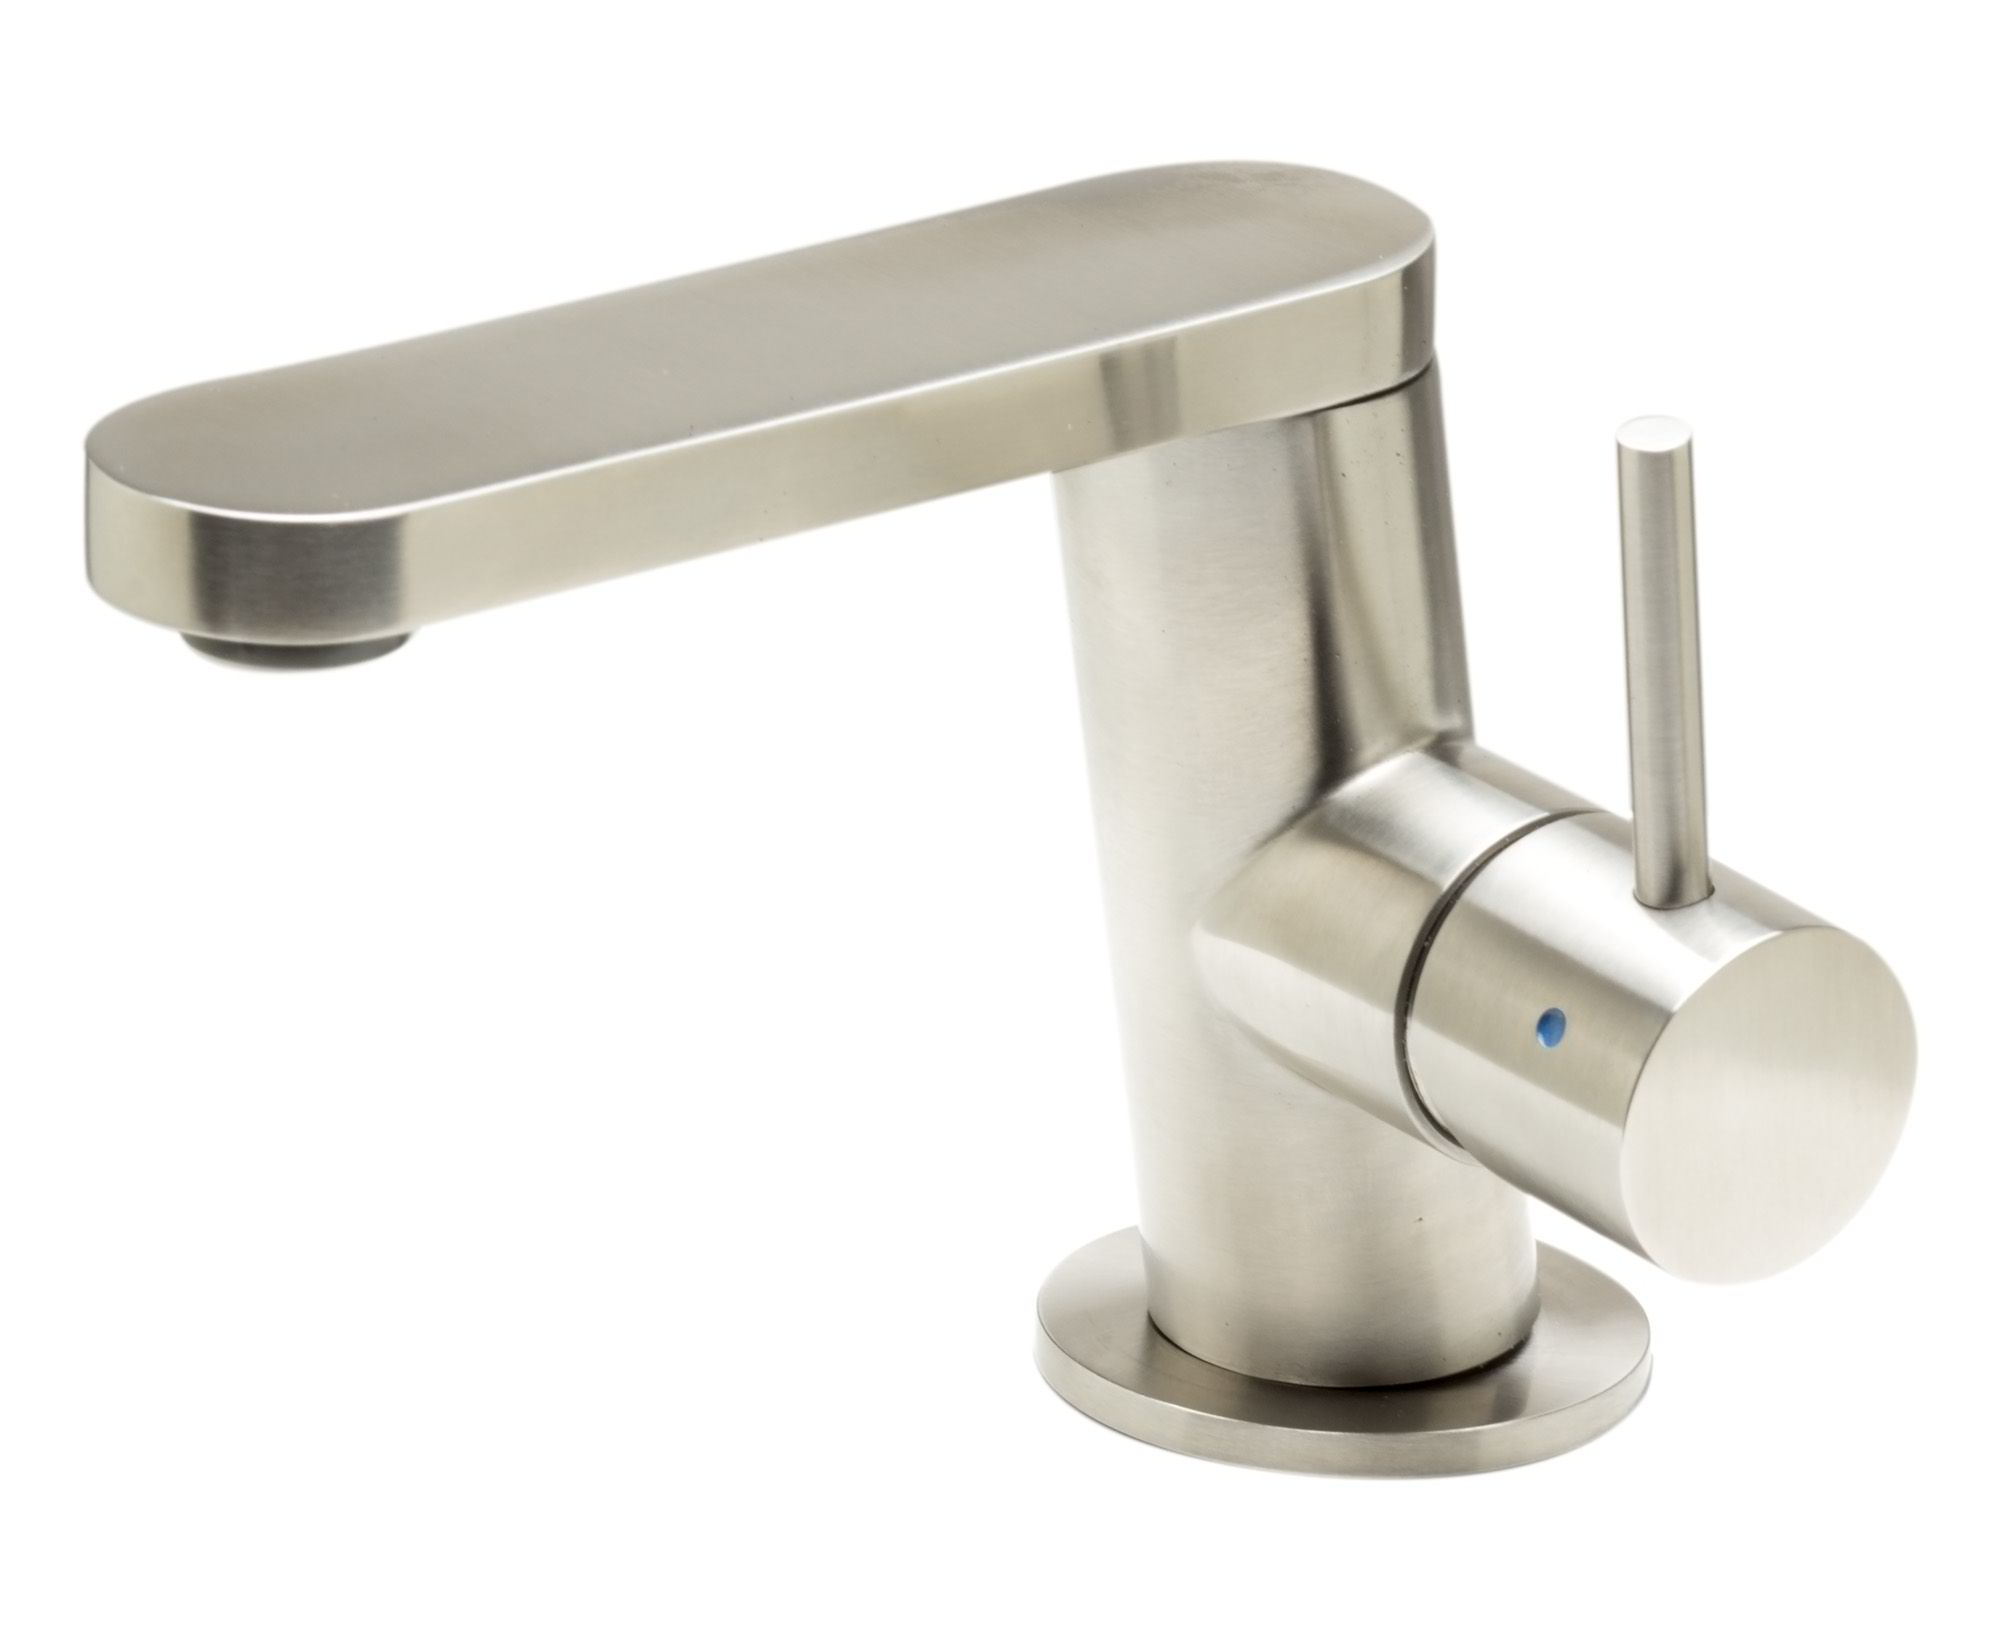 ALFI Brand AB1010 Ultra Modern Polished or Brushed Stainless Steel Bathroom Faucet